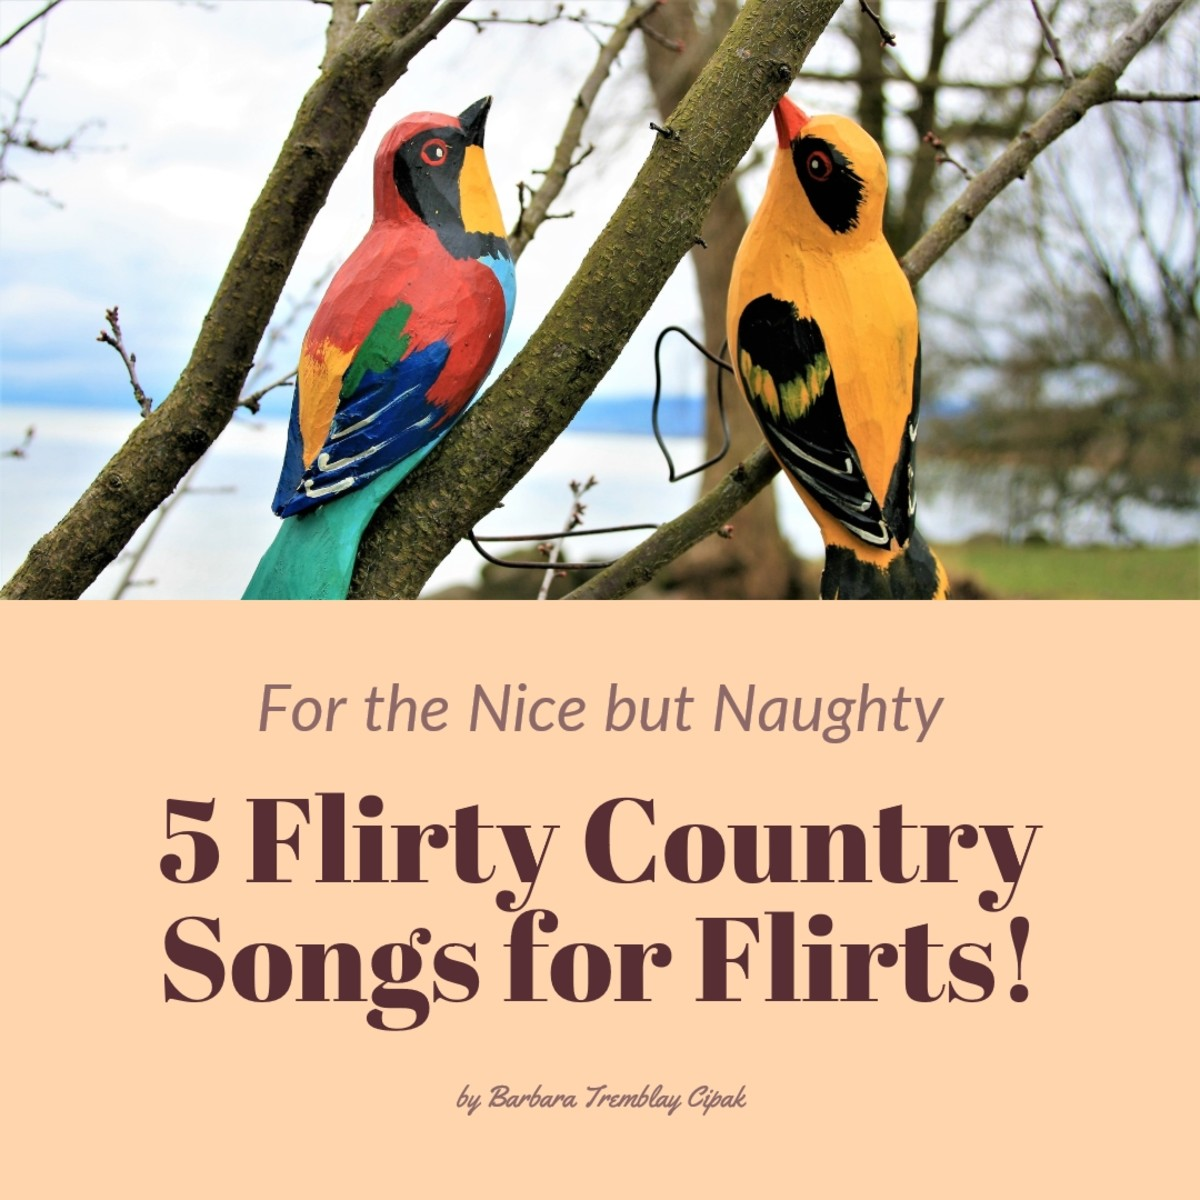 5 Flirty Country Songs